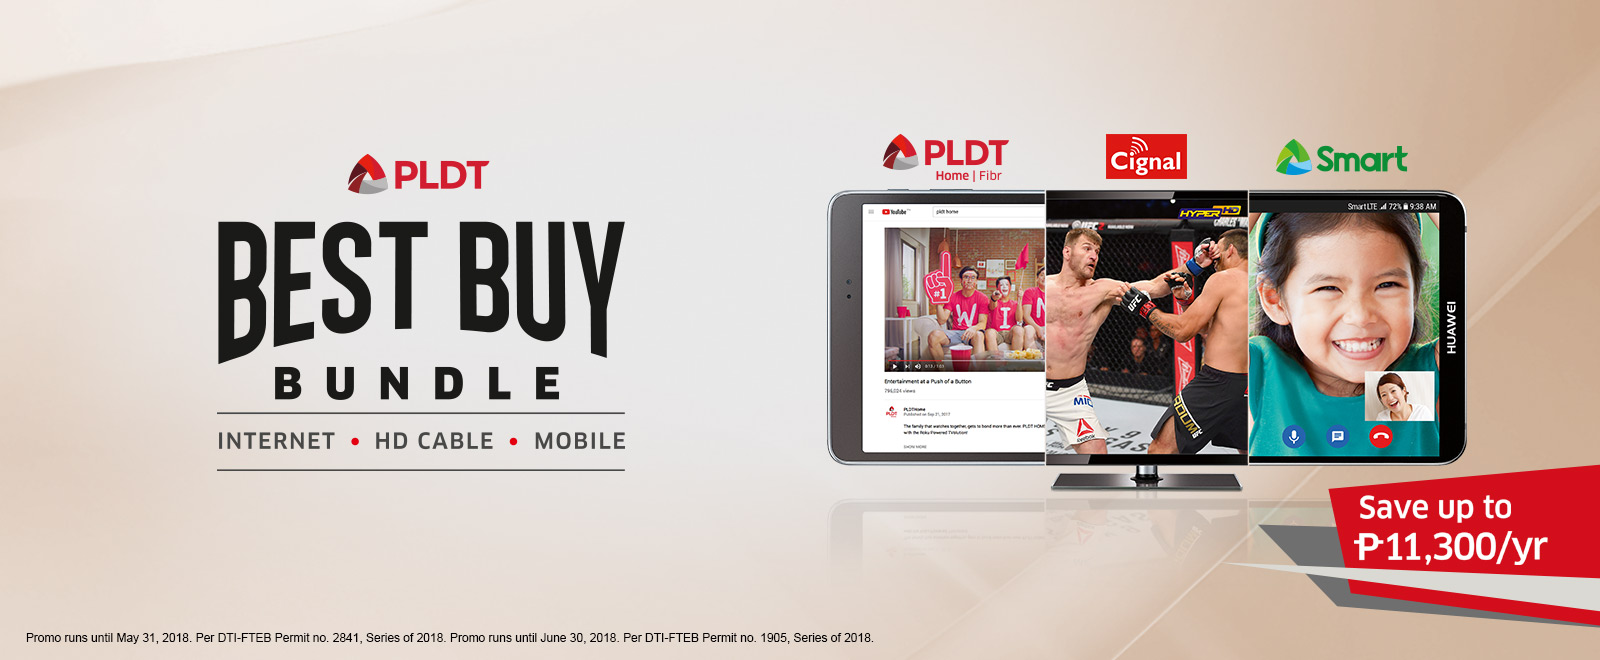 PLDT Best Buy